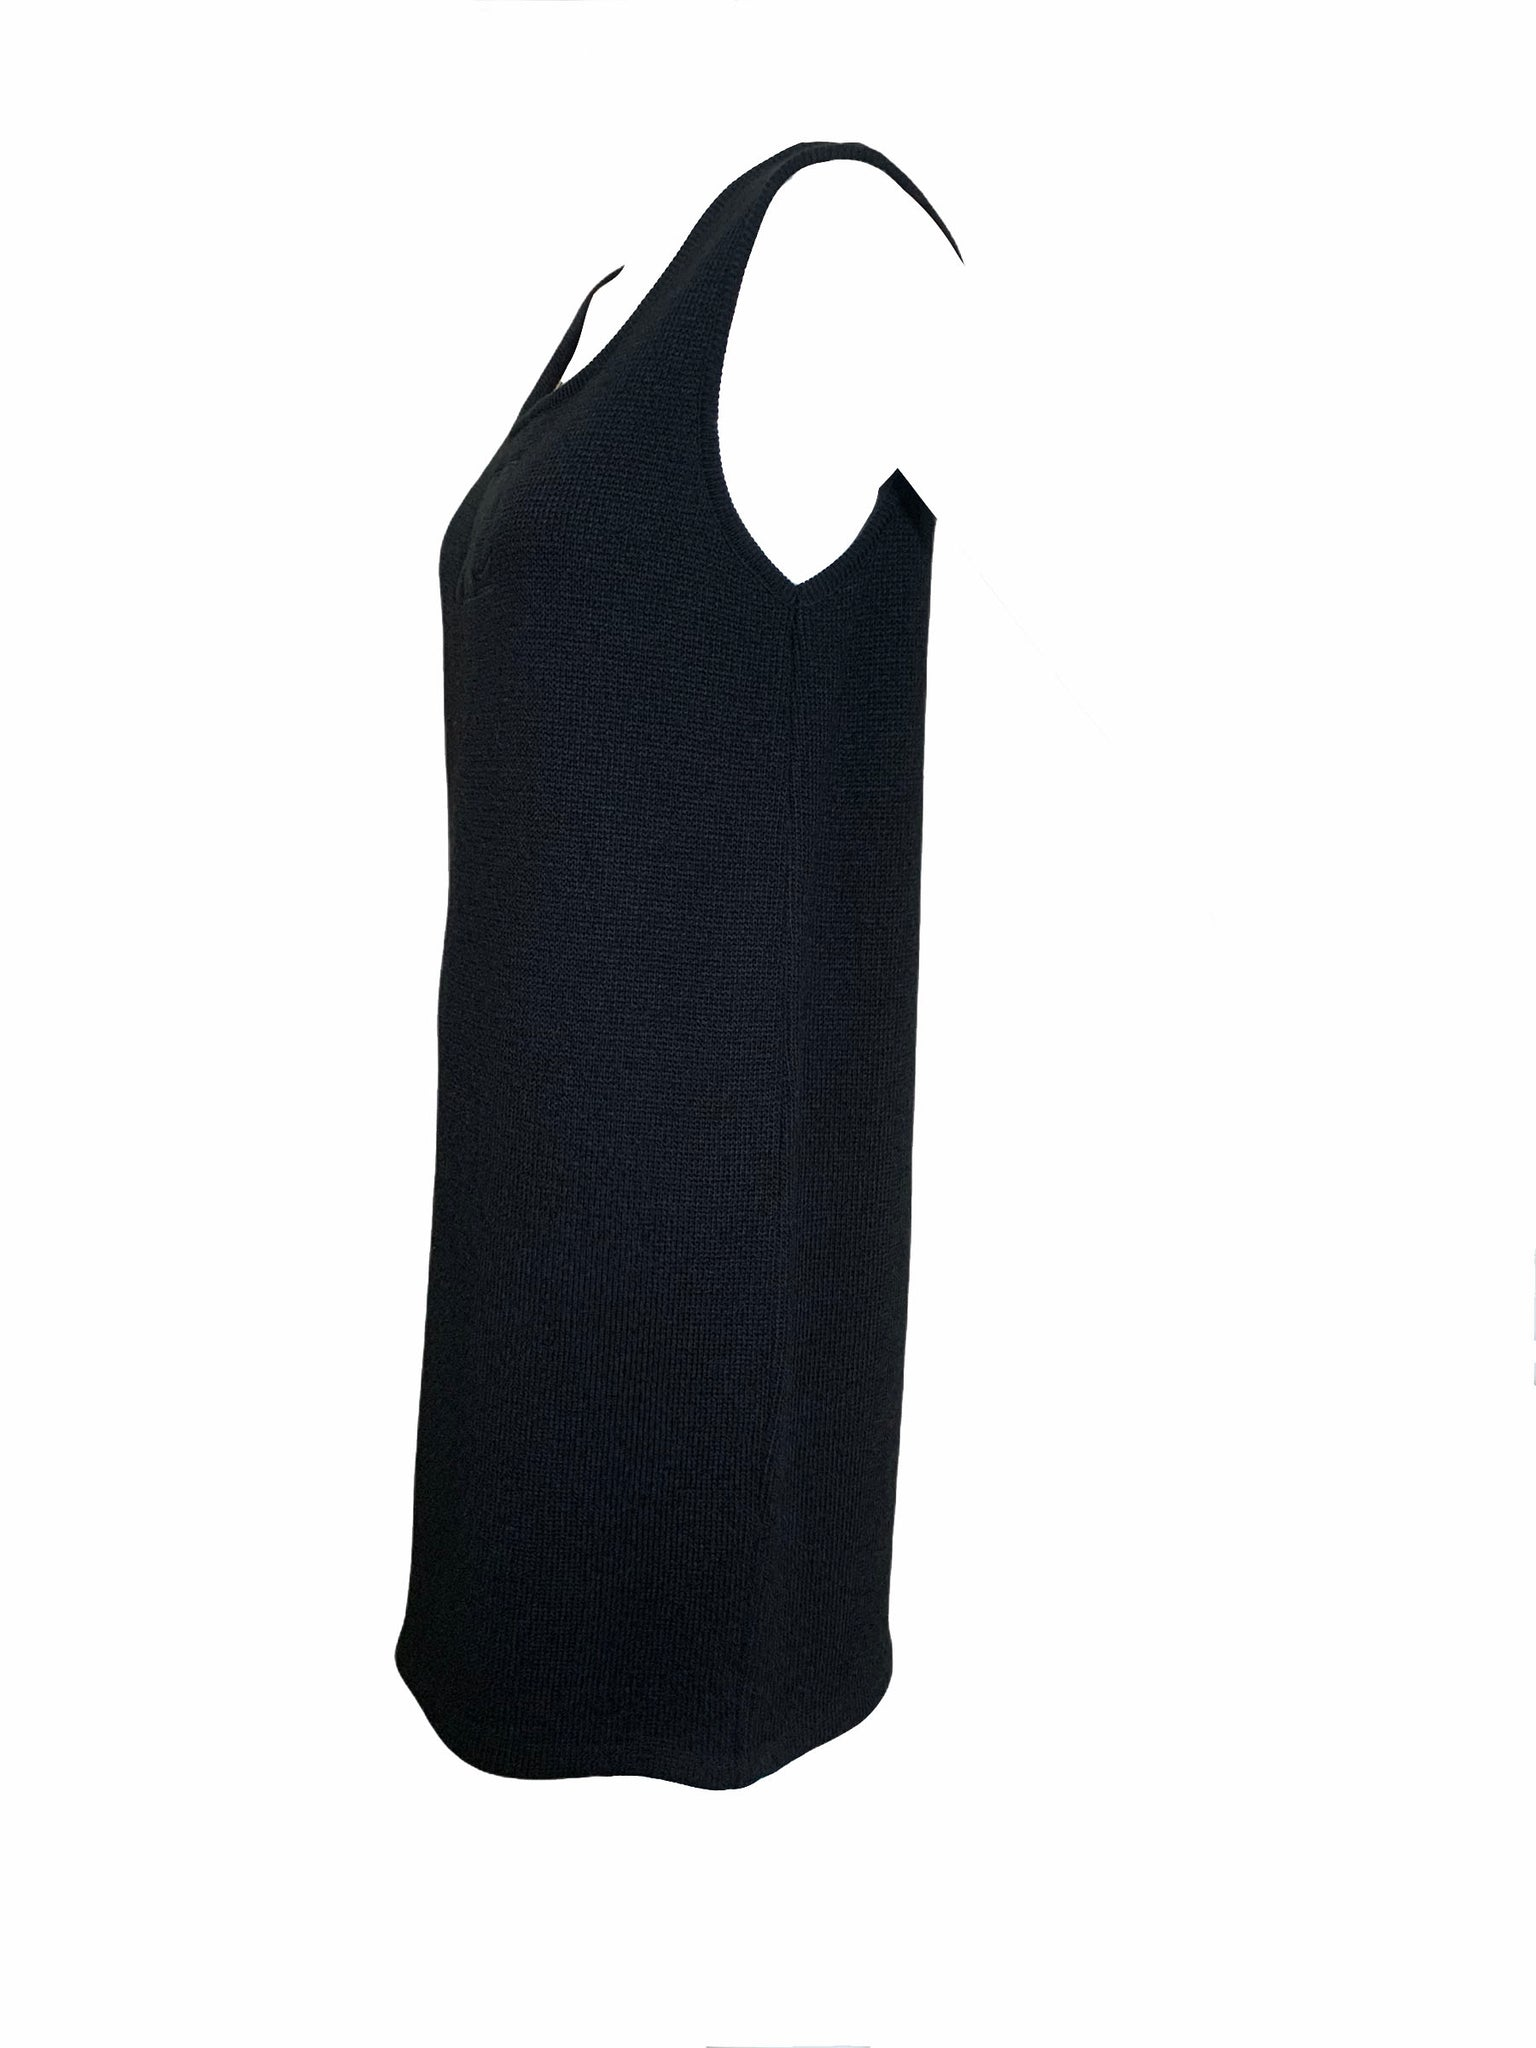 Courreges 80s Black Knit Tank Dress with Logo Side 2 of 4